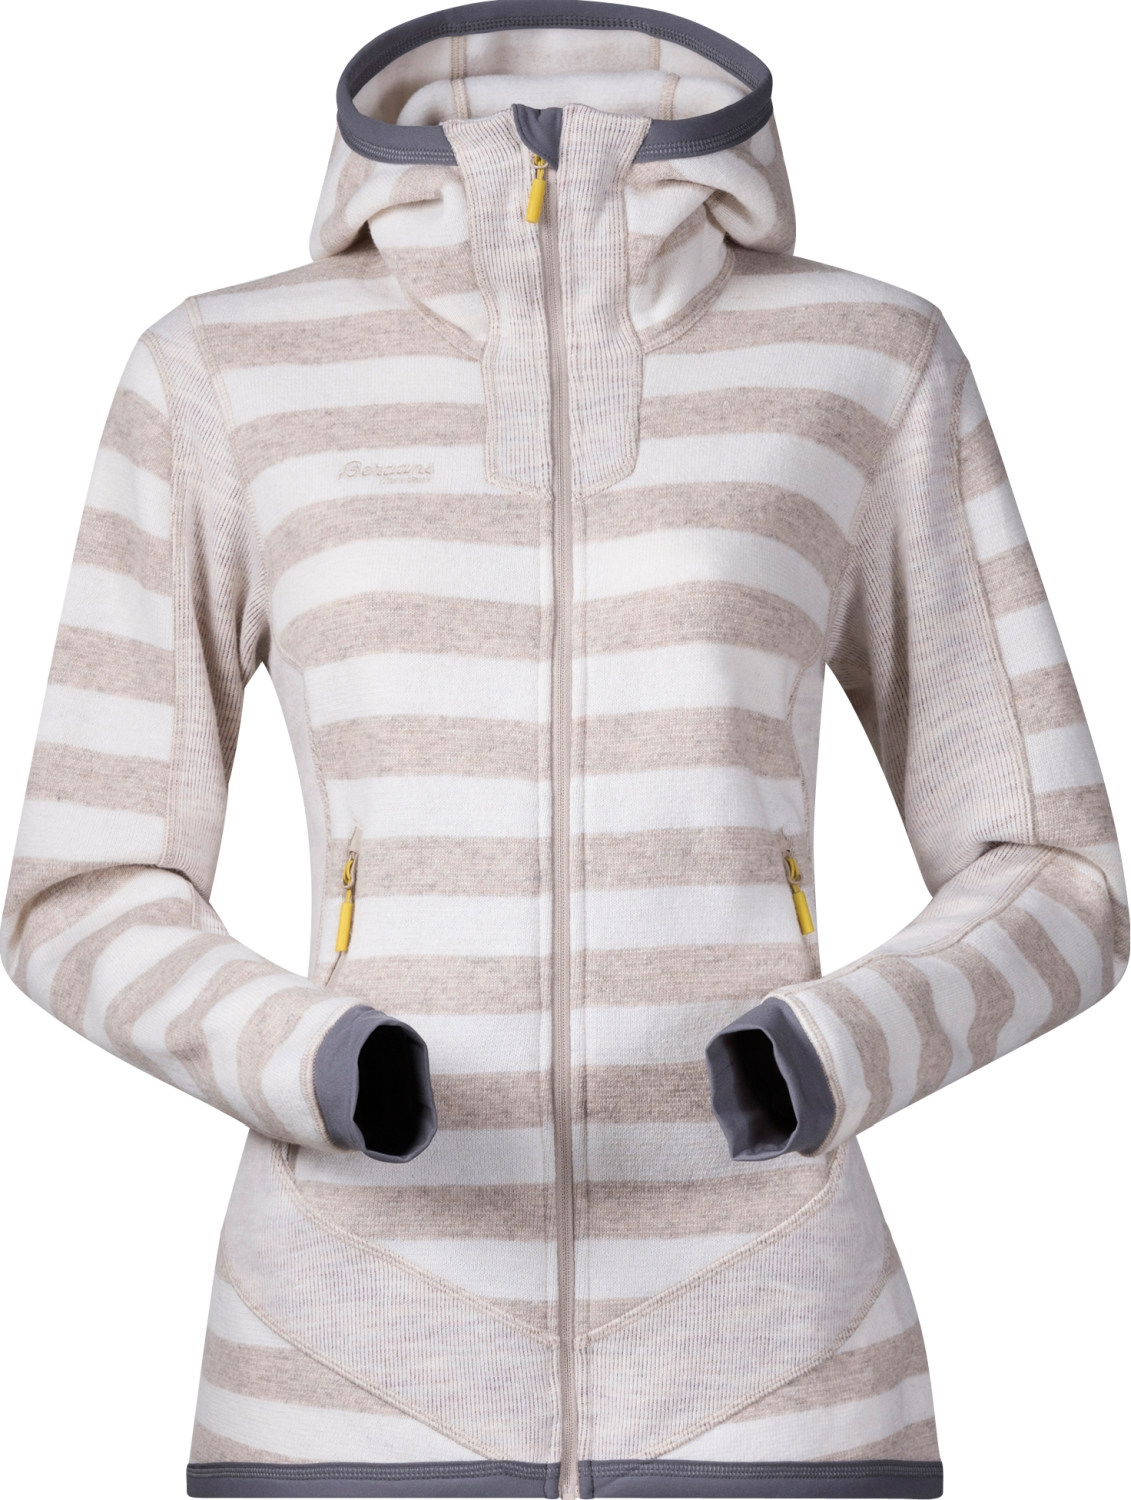 purchase cheap e437f 665e3 Bergans Damen Hollvin Wolljacke im Biwak Onlineshop kaufen